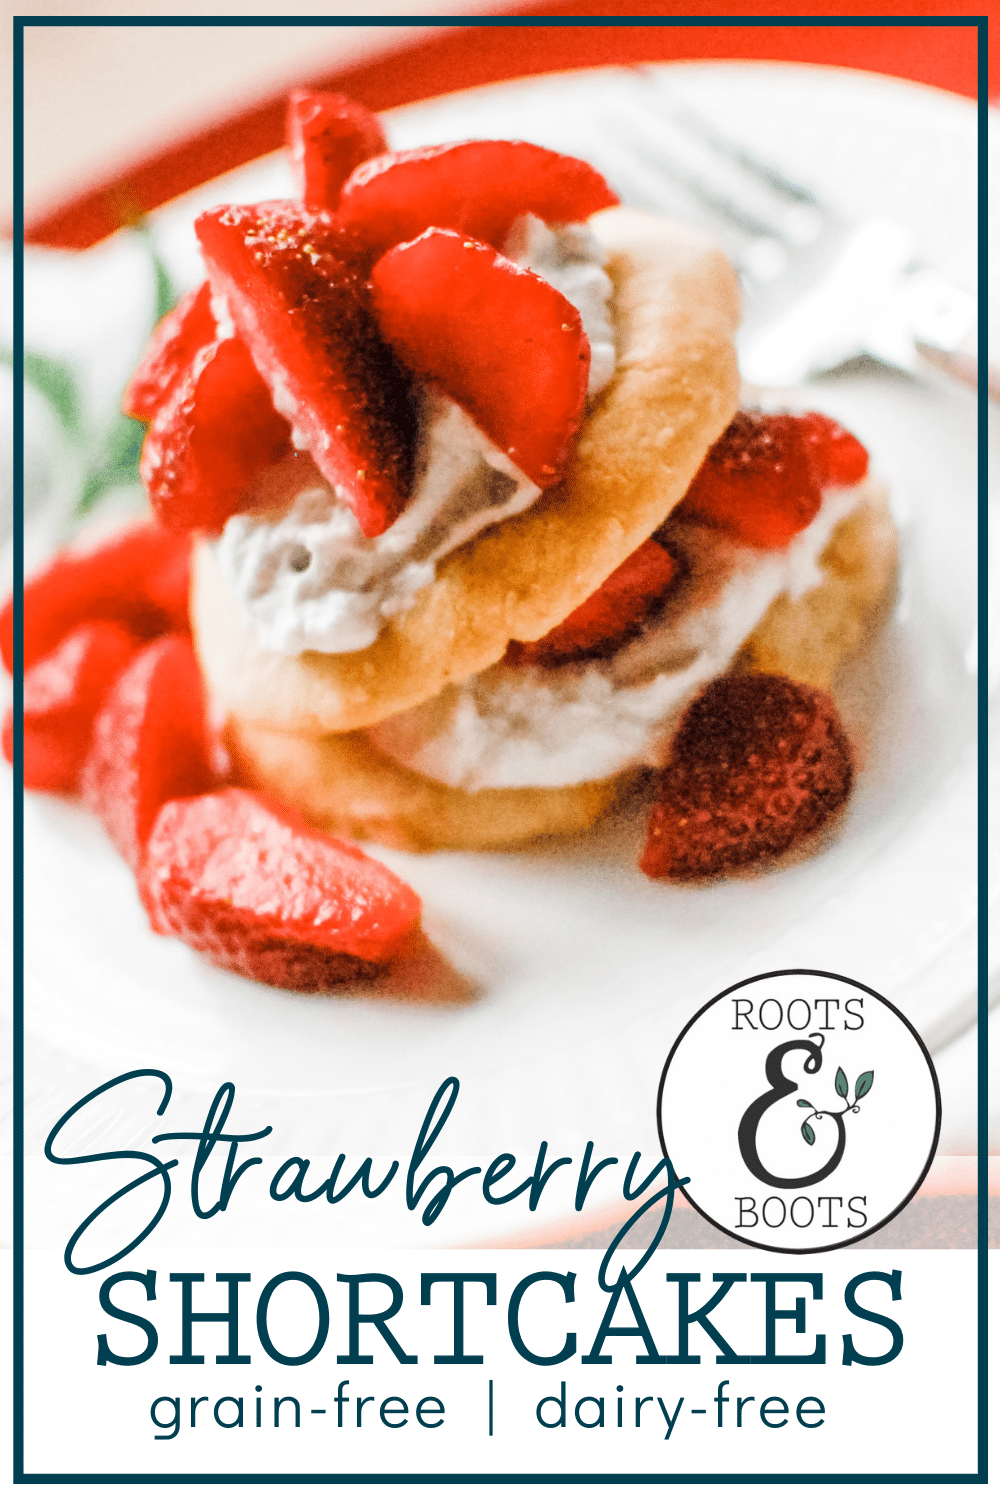 Almond Coconut Paleo Strawberry Shortcakes | Roots & Boots